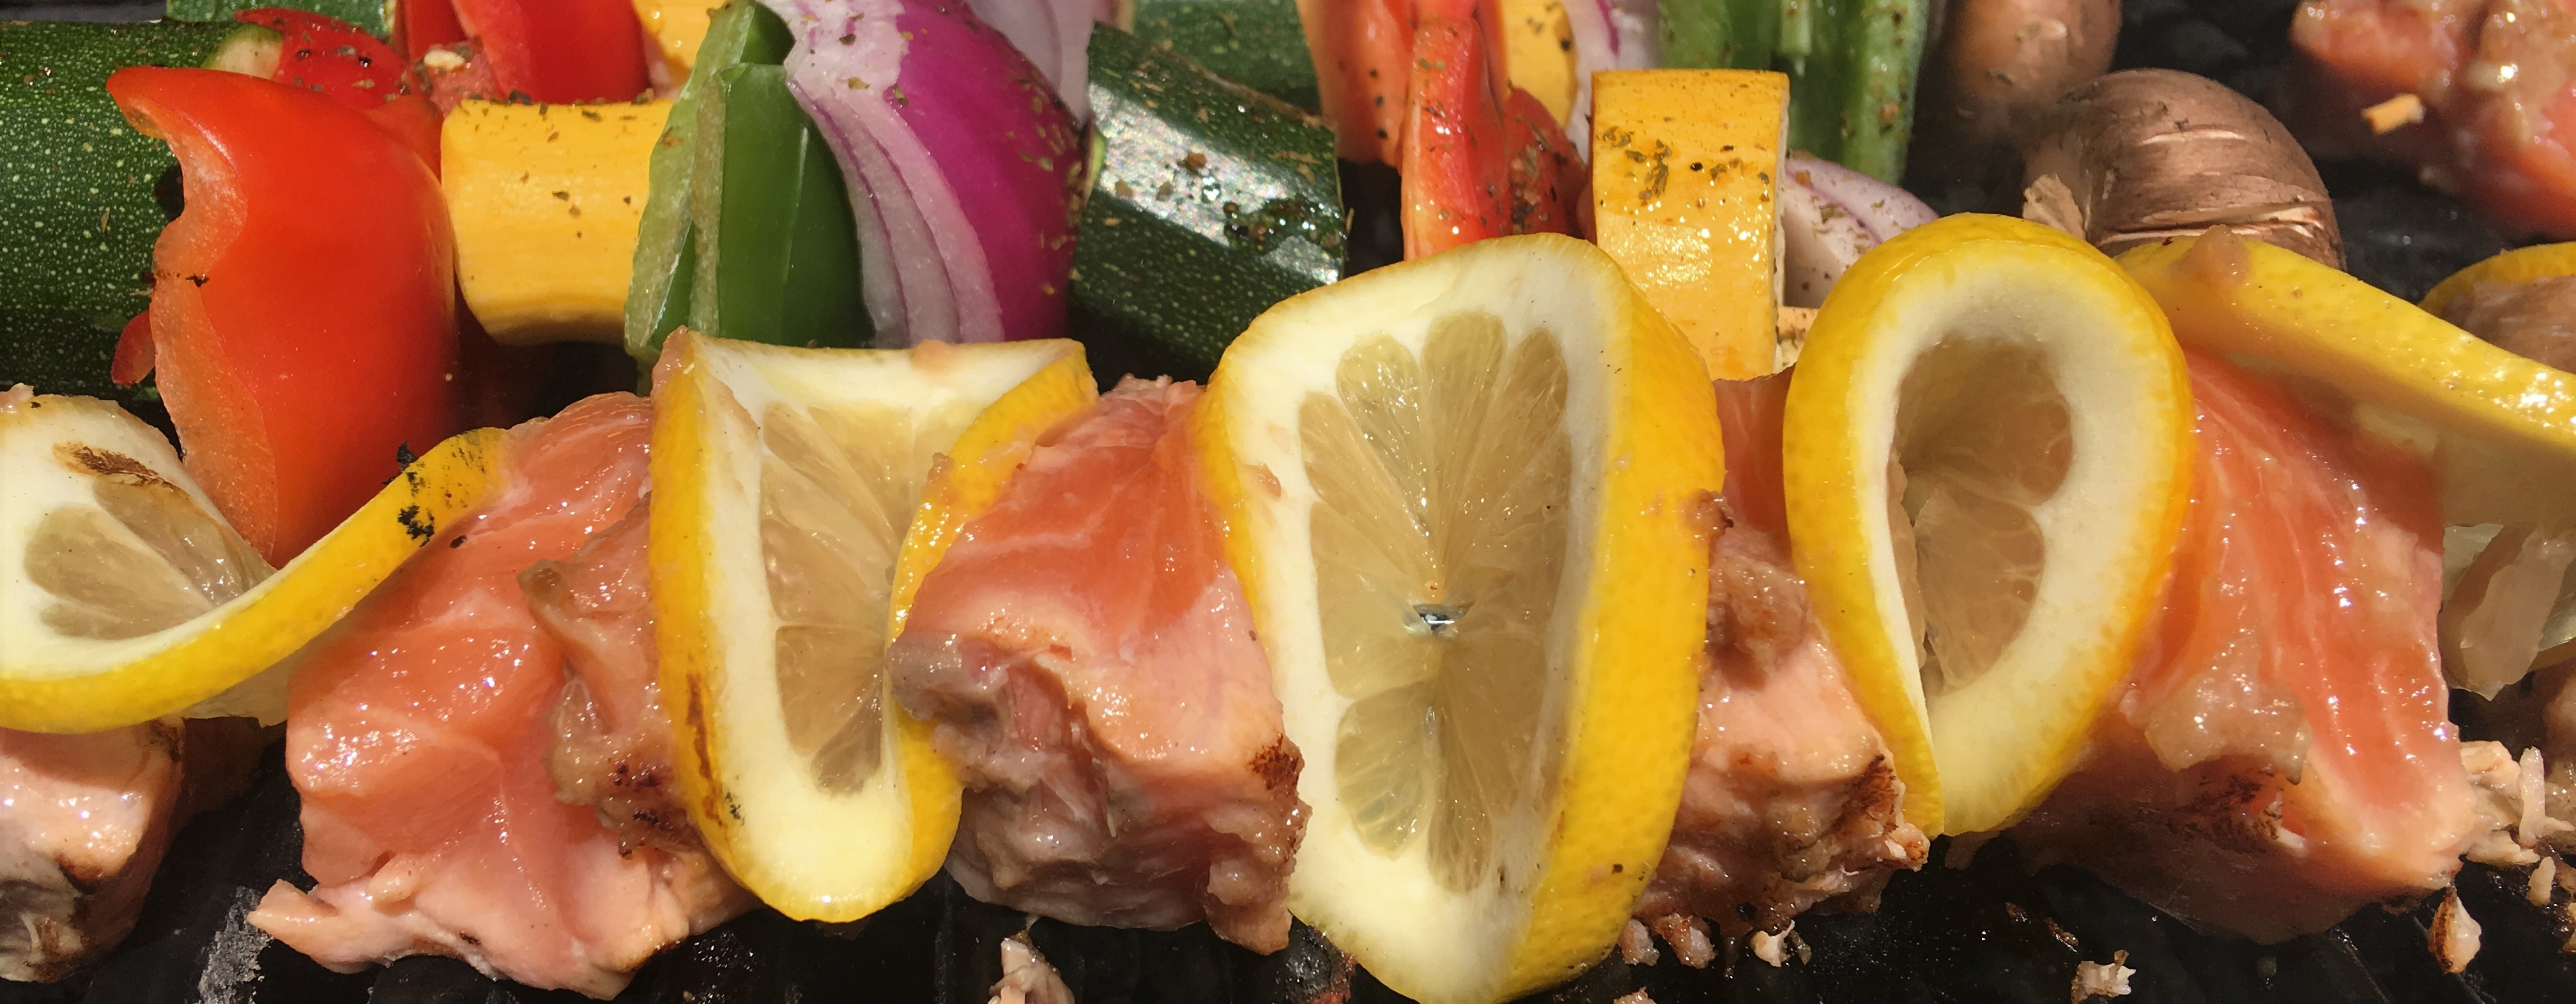 Raw salmon pieces threaded on a skewer in between lemon slices.